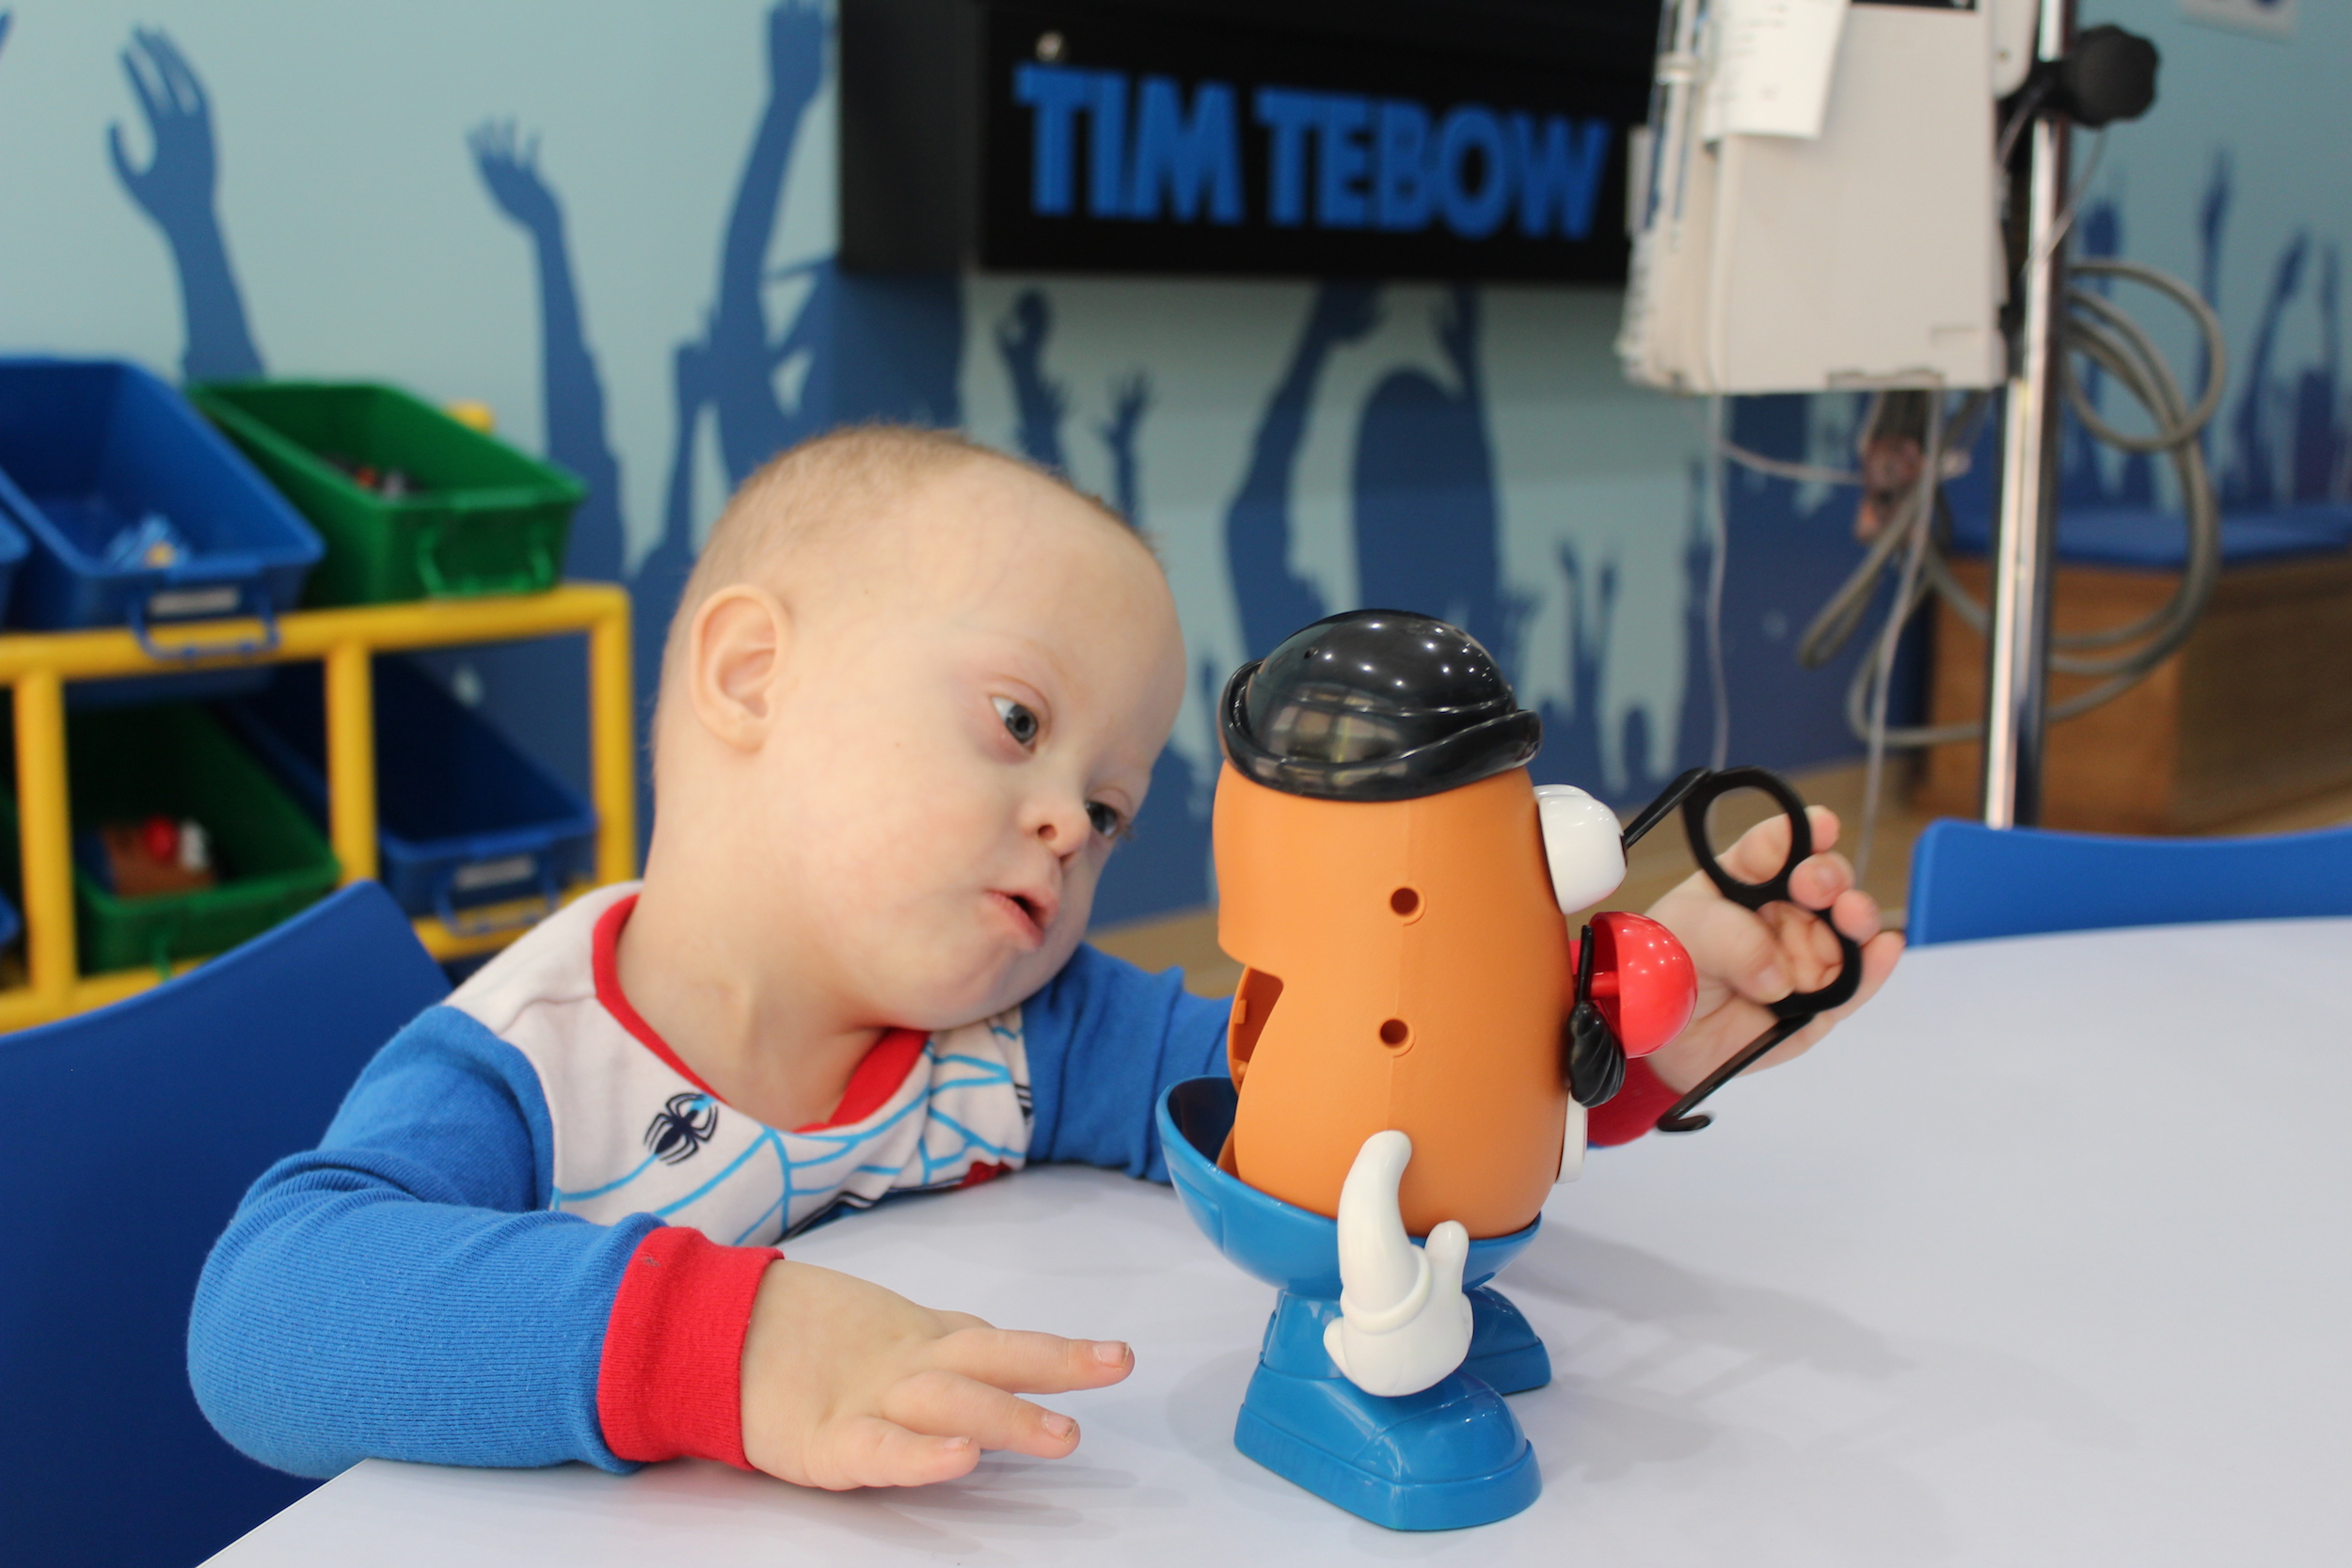 Wyatt_playing_in_the_Covenant_Childlings_Hospital_Timmys_Playroom.JPG